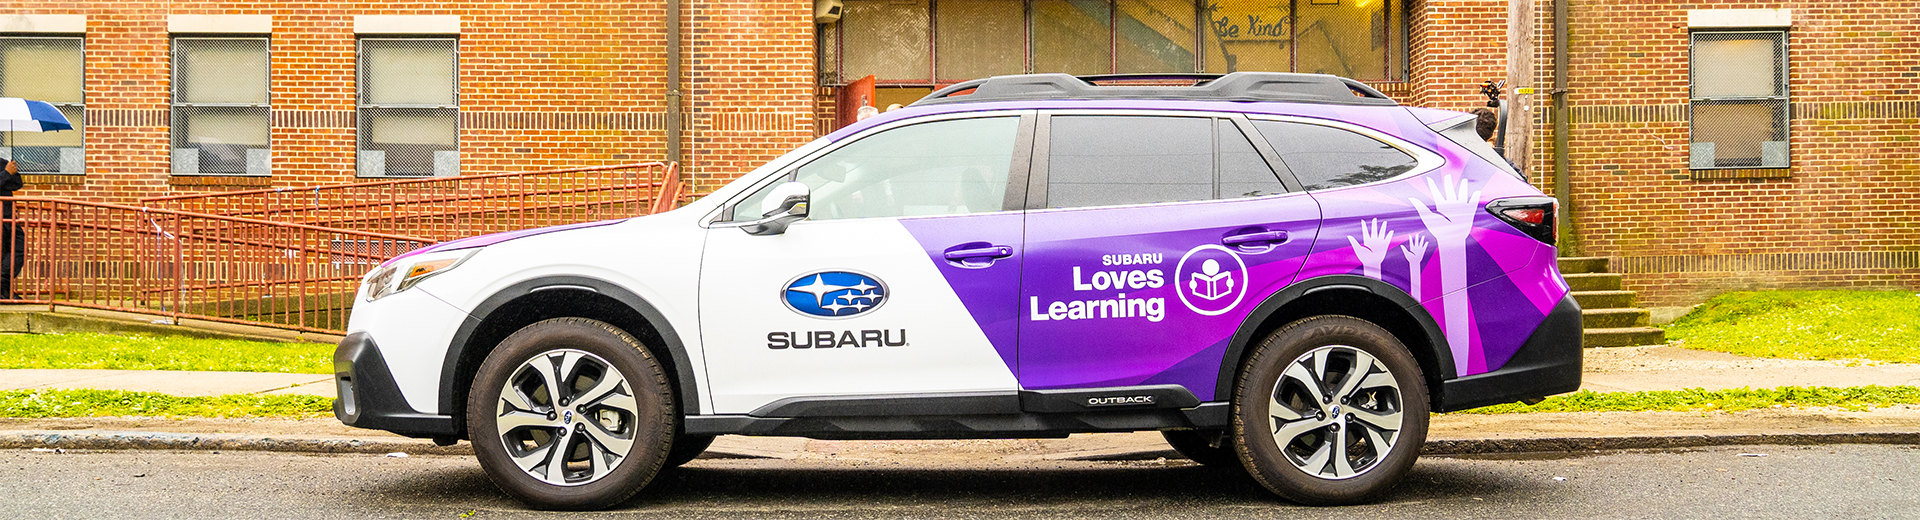 SUBARU OF AMERICA ADOPTS ALL K-5 CLASSROOMS IN THE CAMDEN CITY SCHOOL DISTRICT<br />